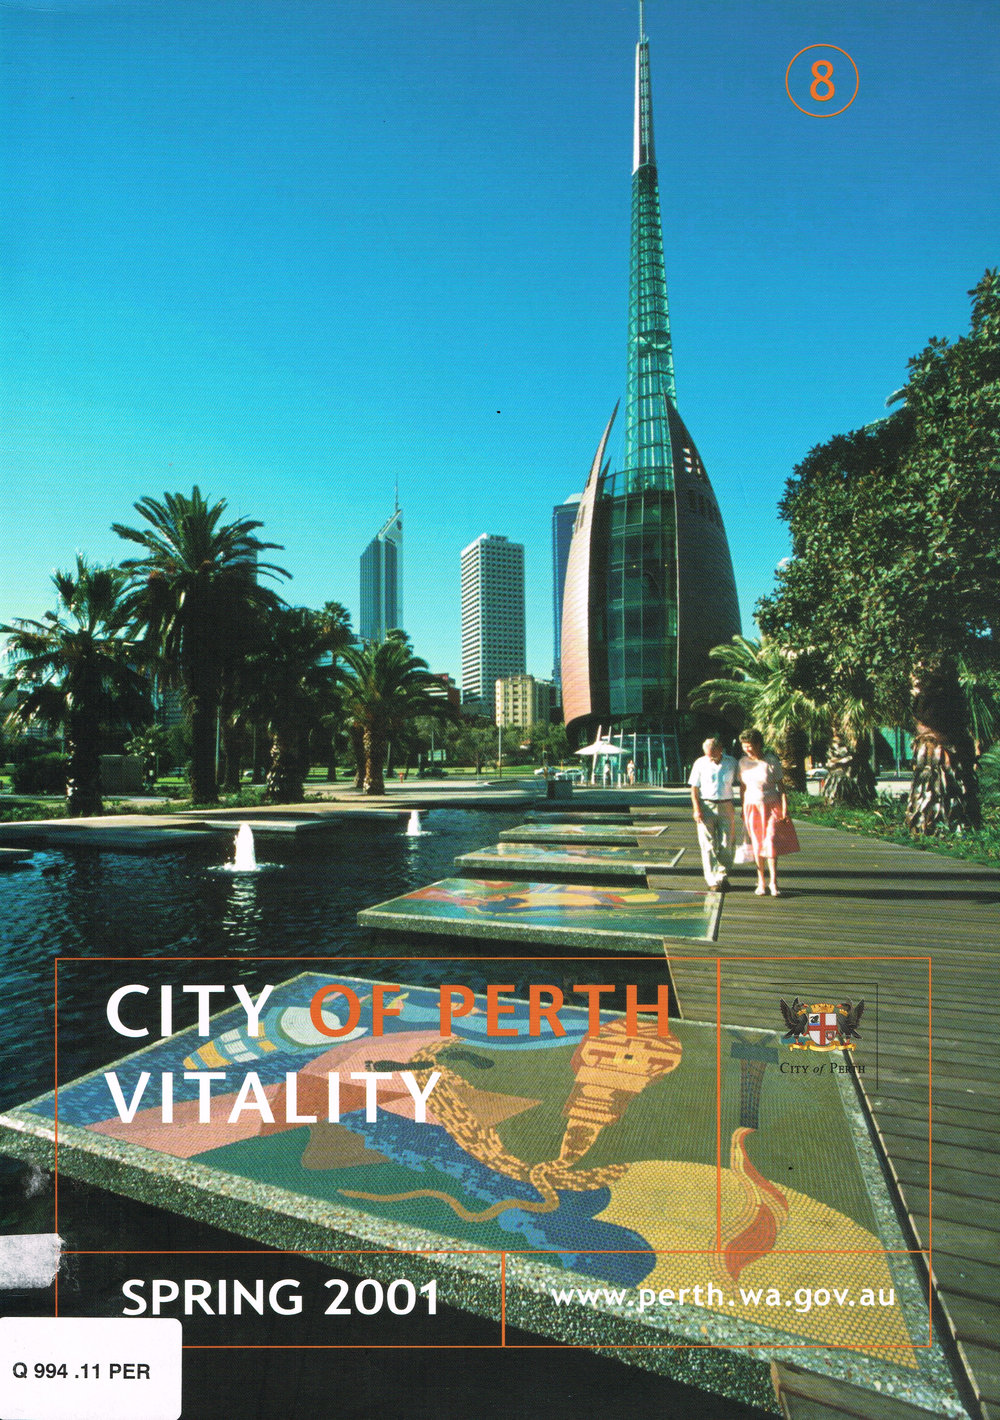 City of Perth Vitality, Spring 2001  City of Perth, October 2001